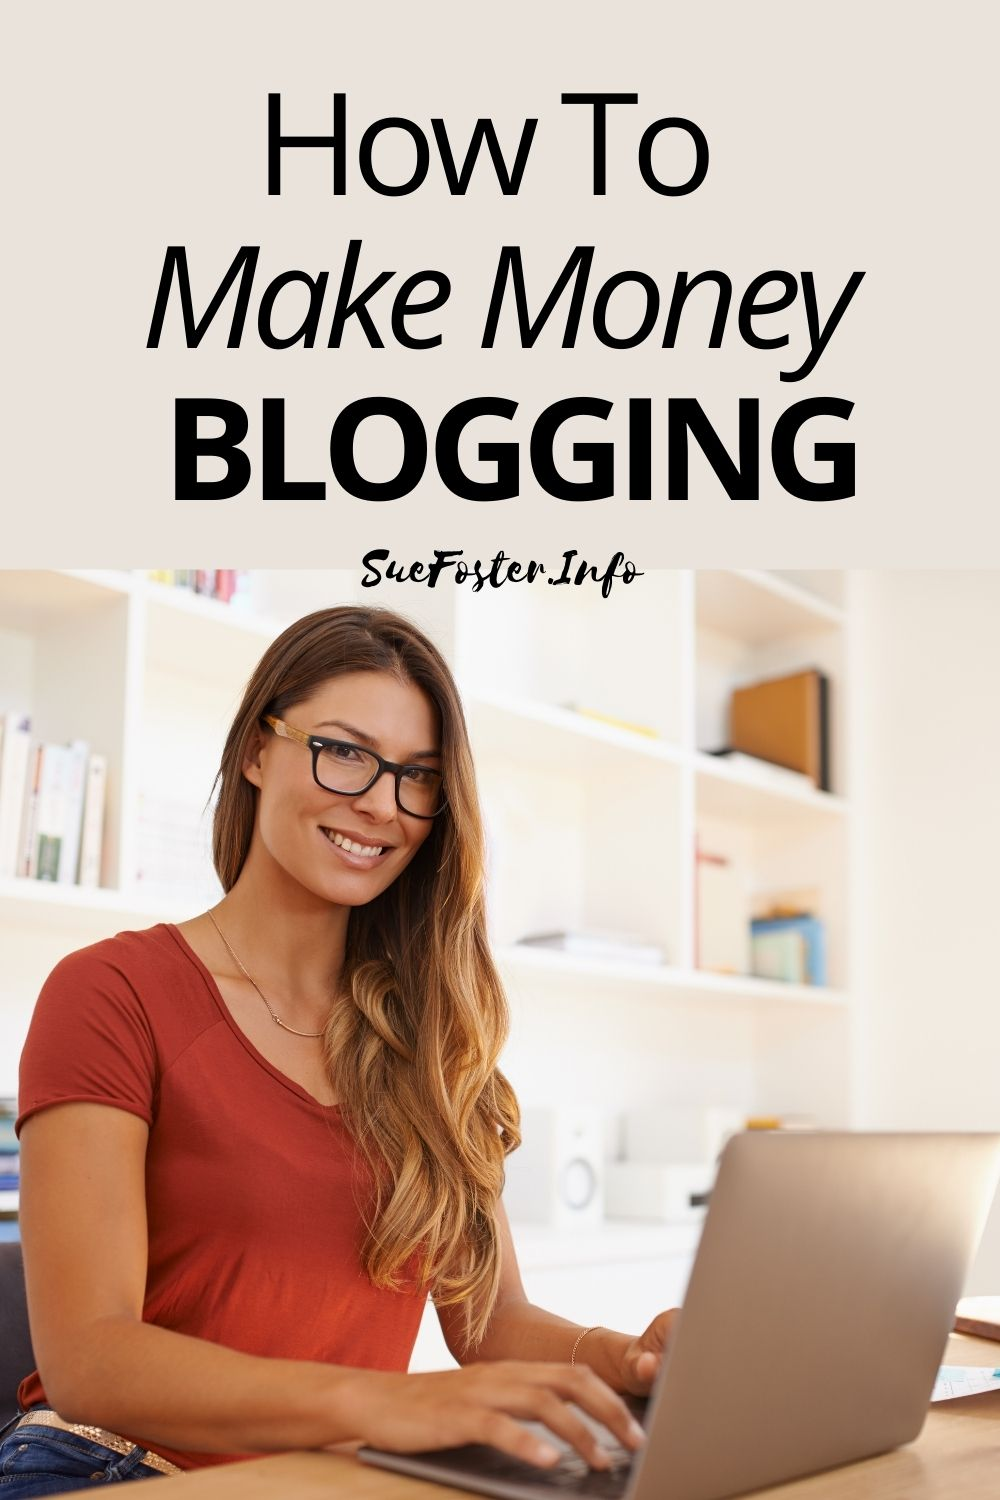 Follow these tips on how to make money blogging and how to start the right way so that you have a better chance of success.